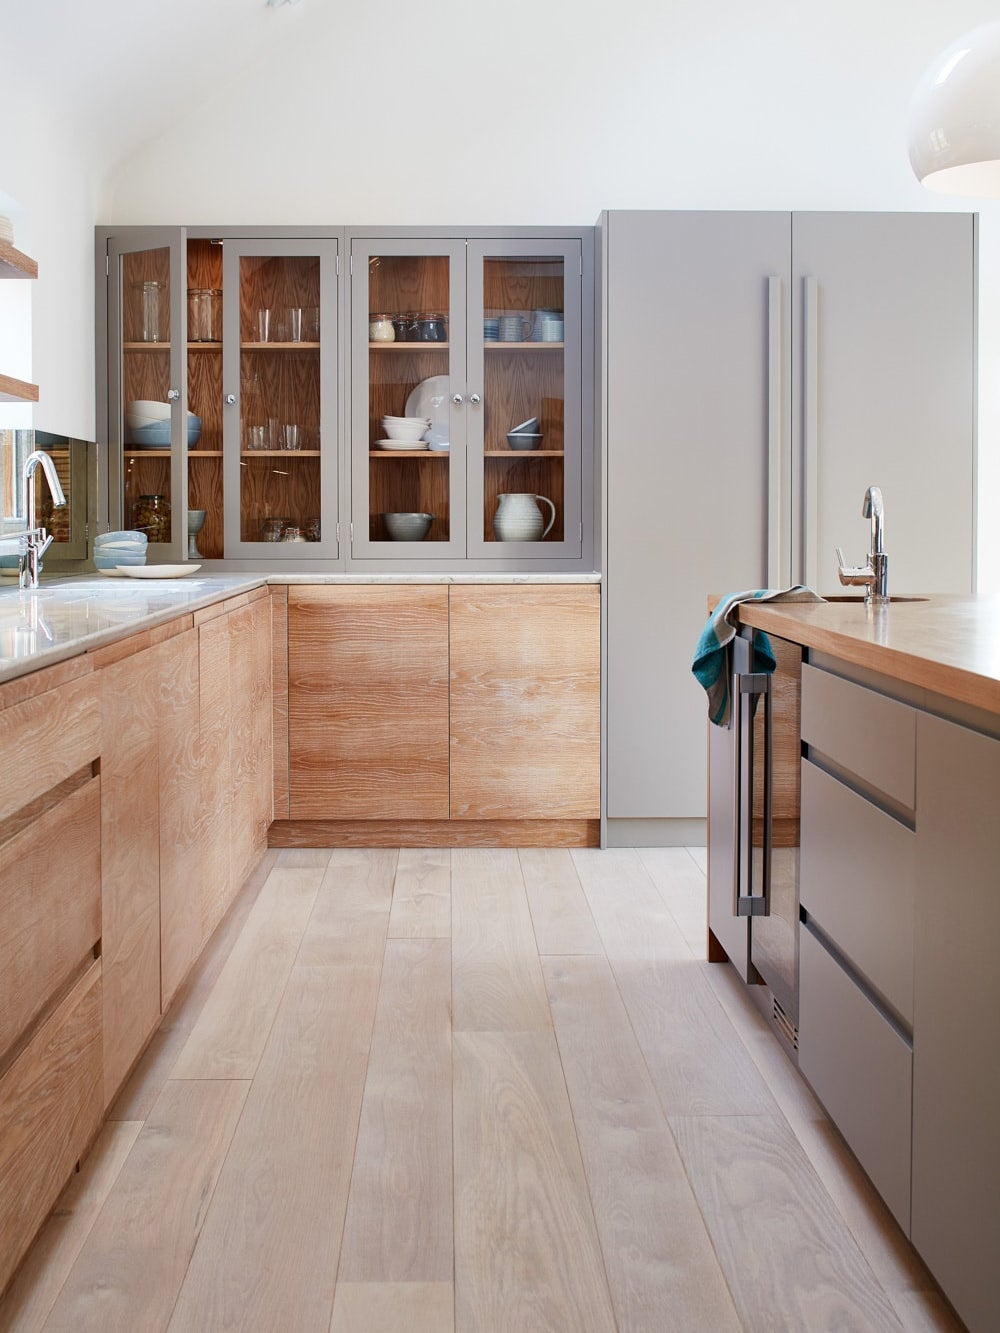 wood lower cabinets with no hardware